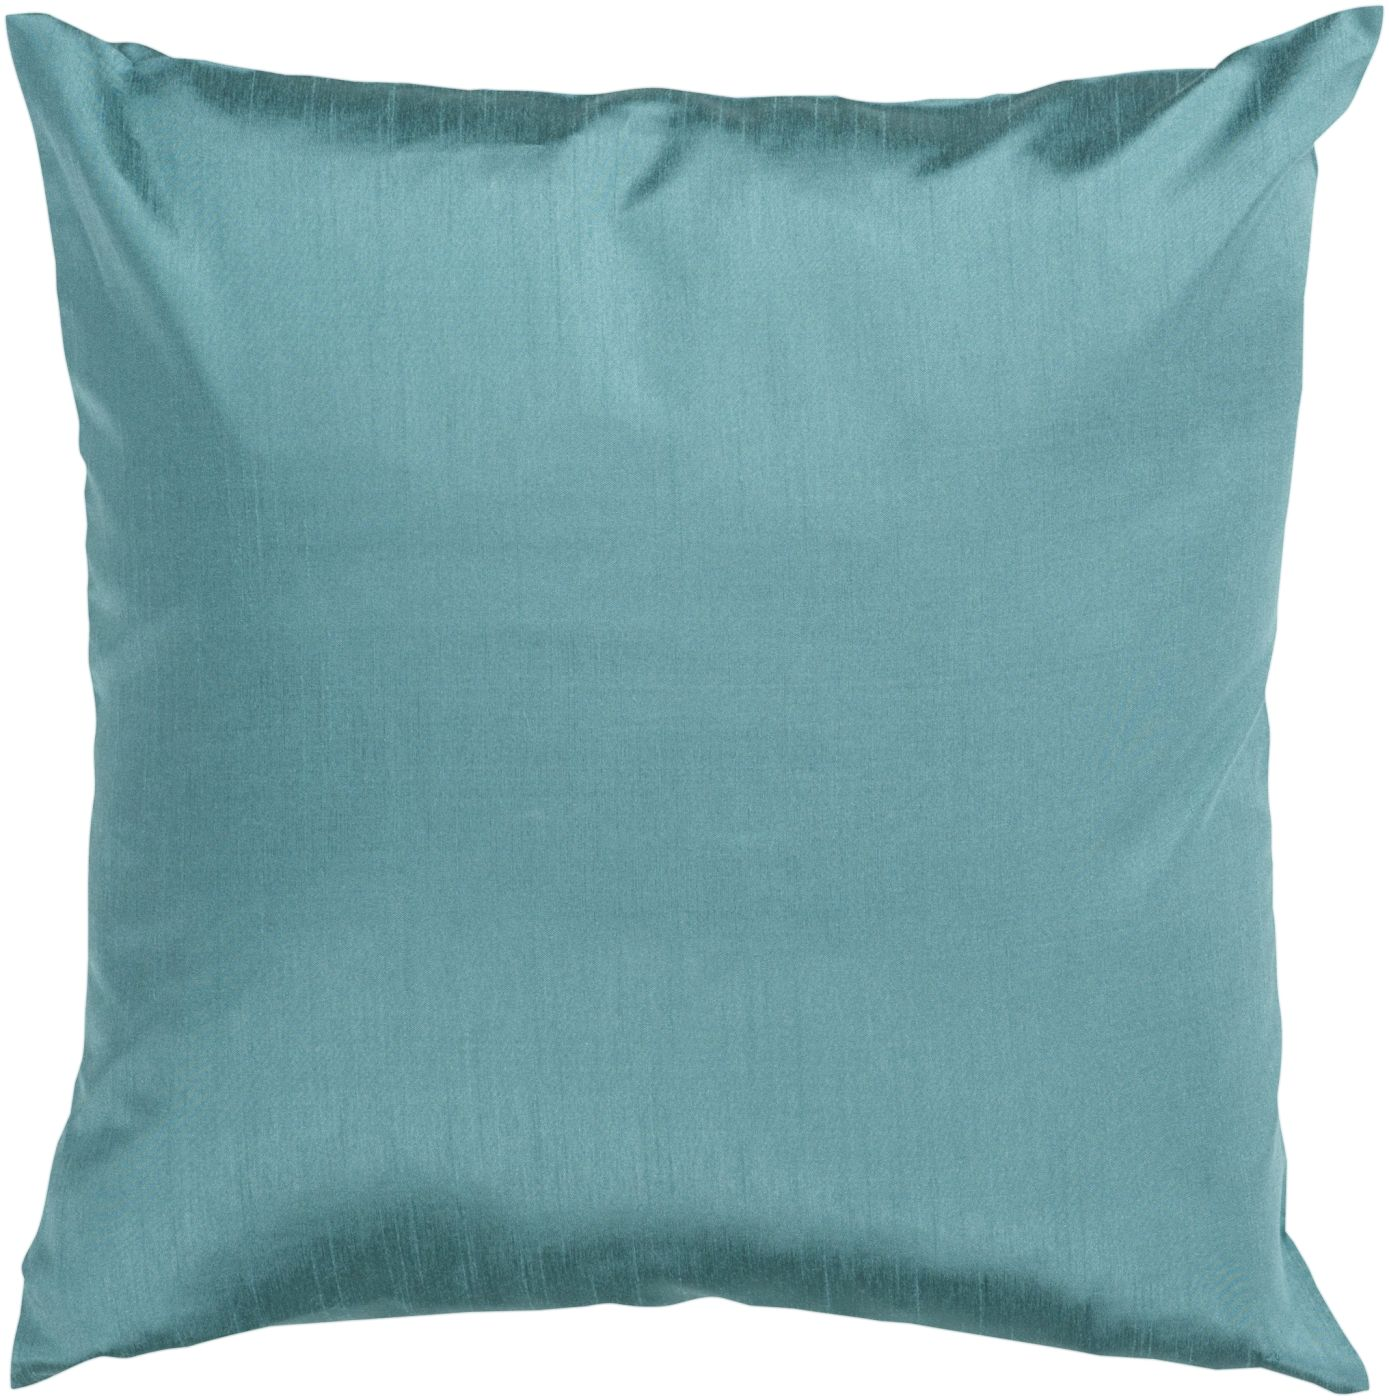 Throw Pillow Warehouse : Surya Solid Luxe Throw Pillow Green HH041-1818D. Only $27.60 at Contemporary Furniture Warehouse.